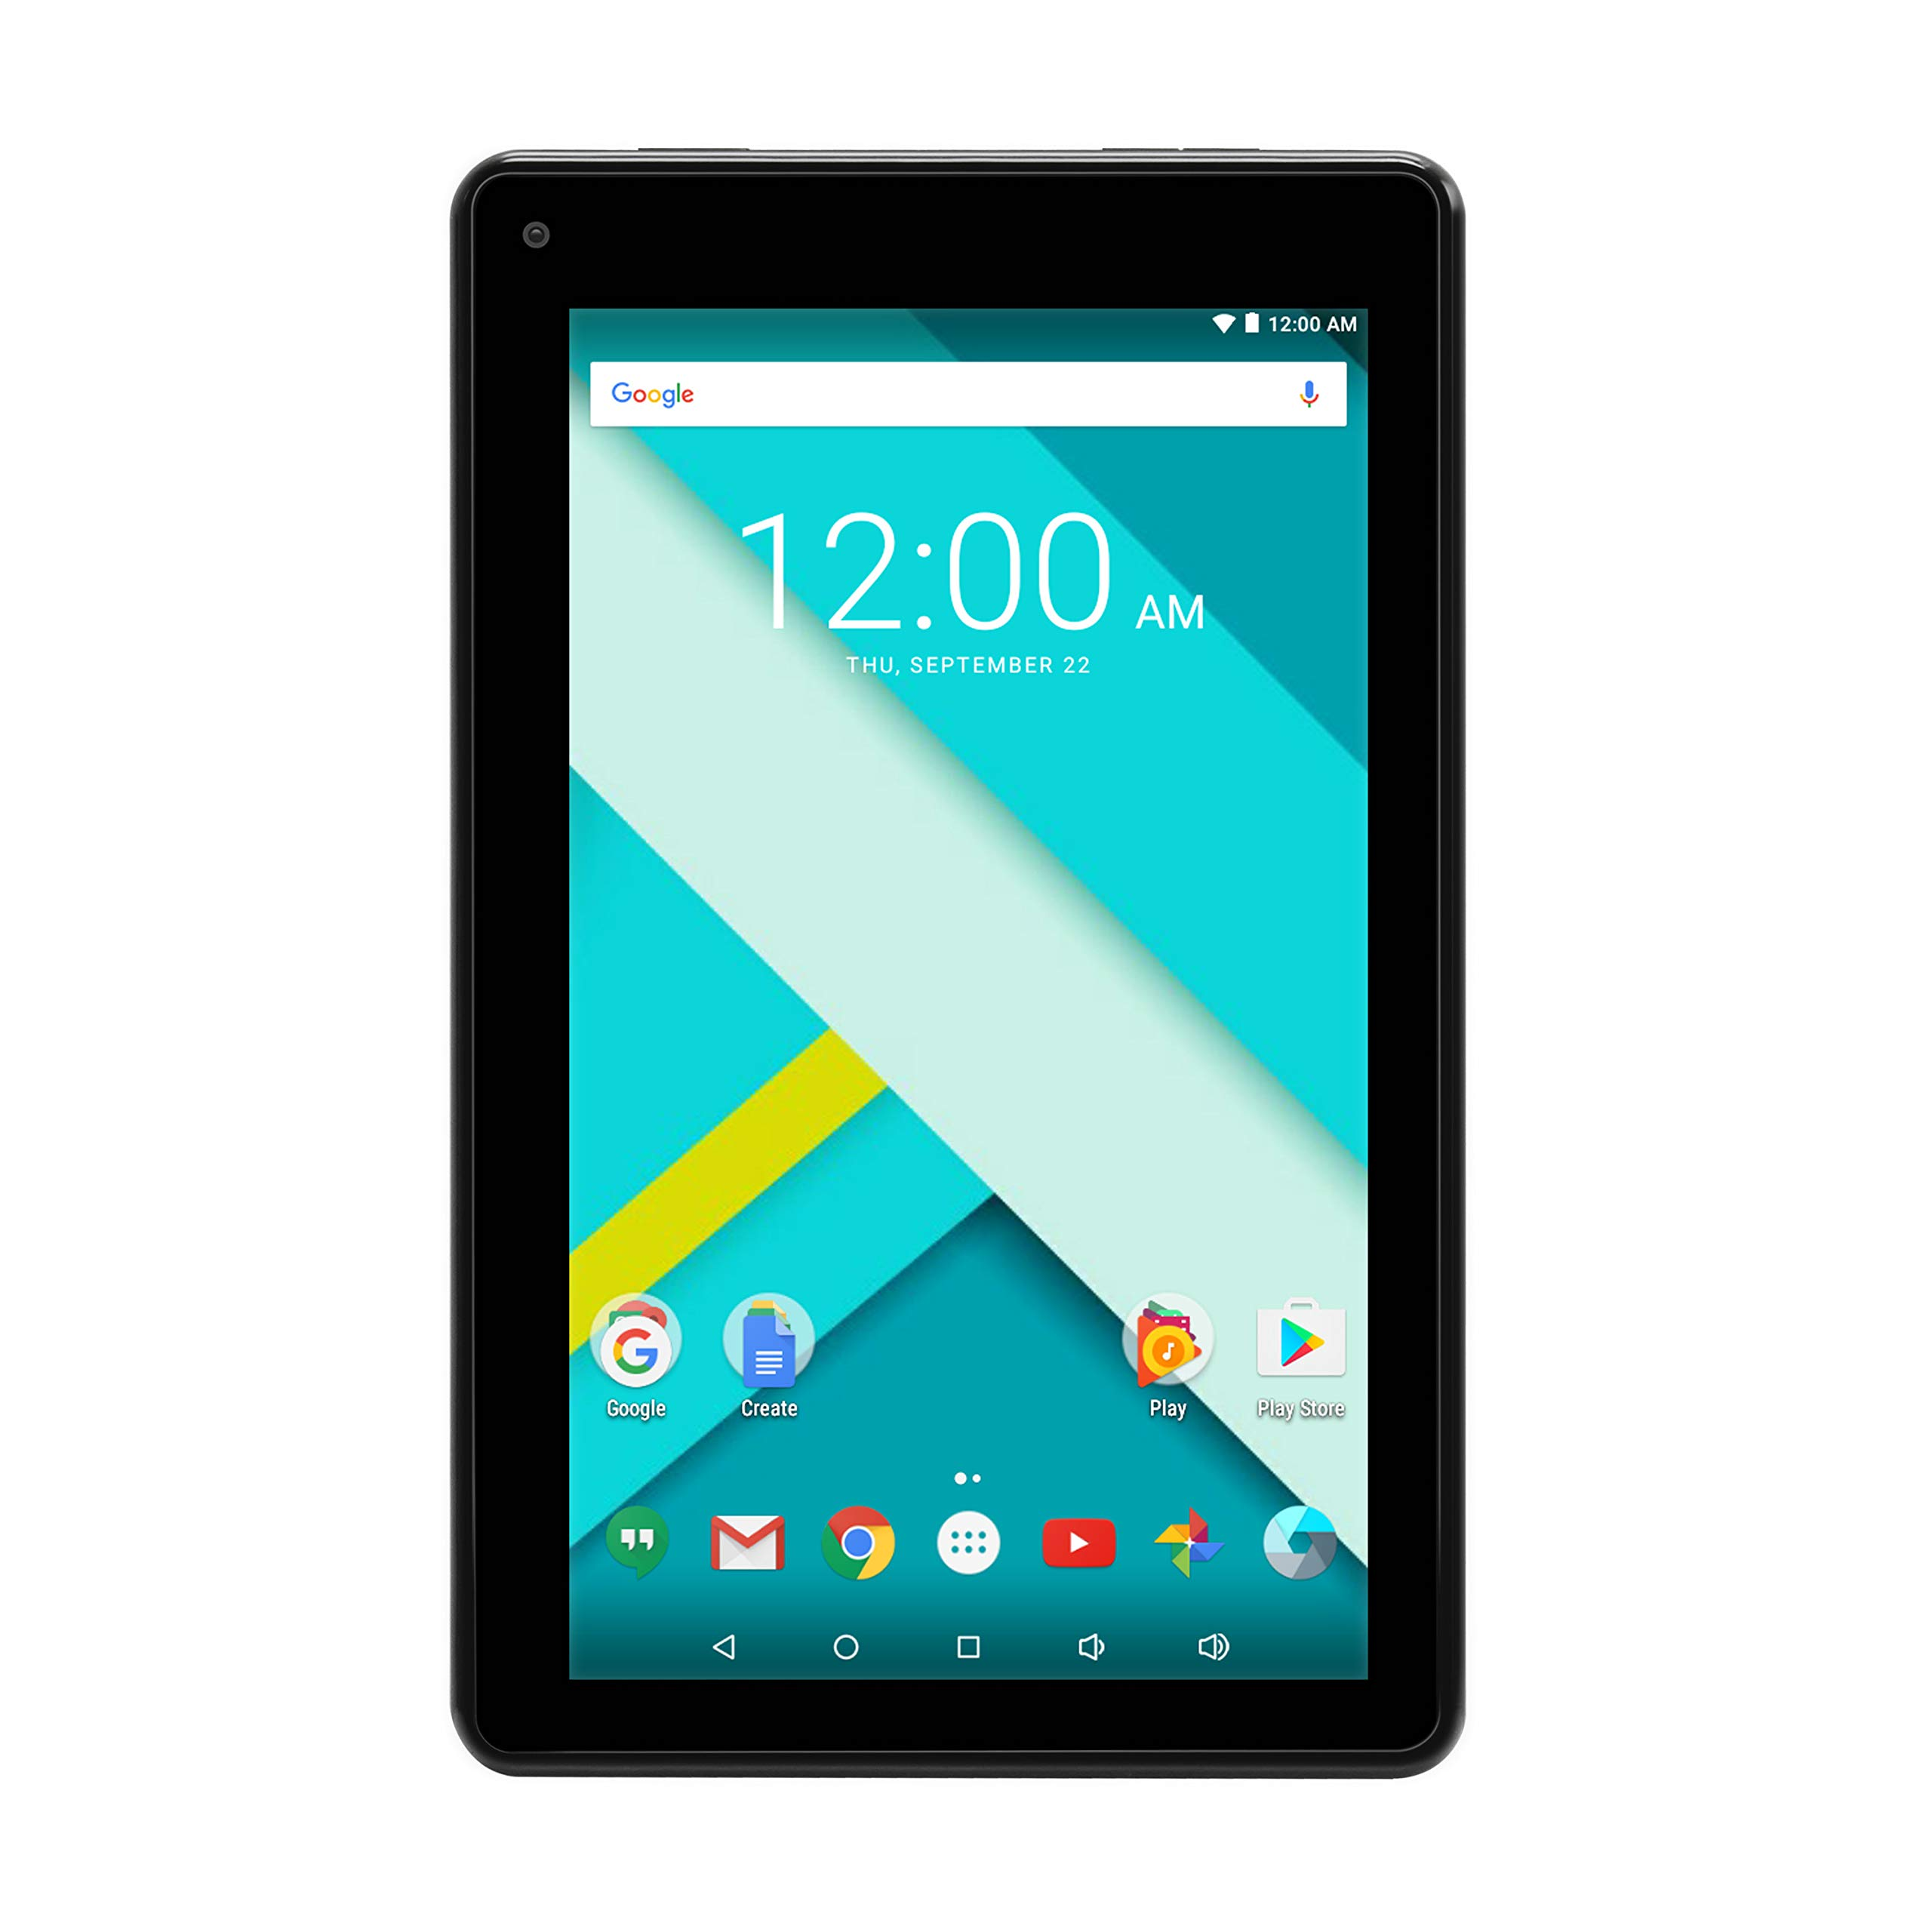 High Performance RCA 7 Inch 1GB RAM 16G Tablet MTK Quad Core Dual Camera Touch IPS Screen 1024 x 600 WiFi Bluetooth Android 7.0 Black (Renewed) by RCA